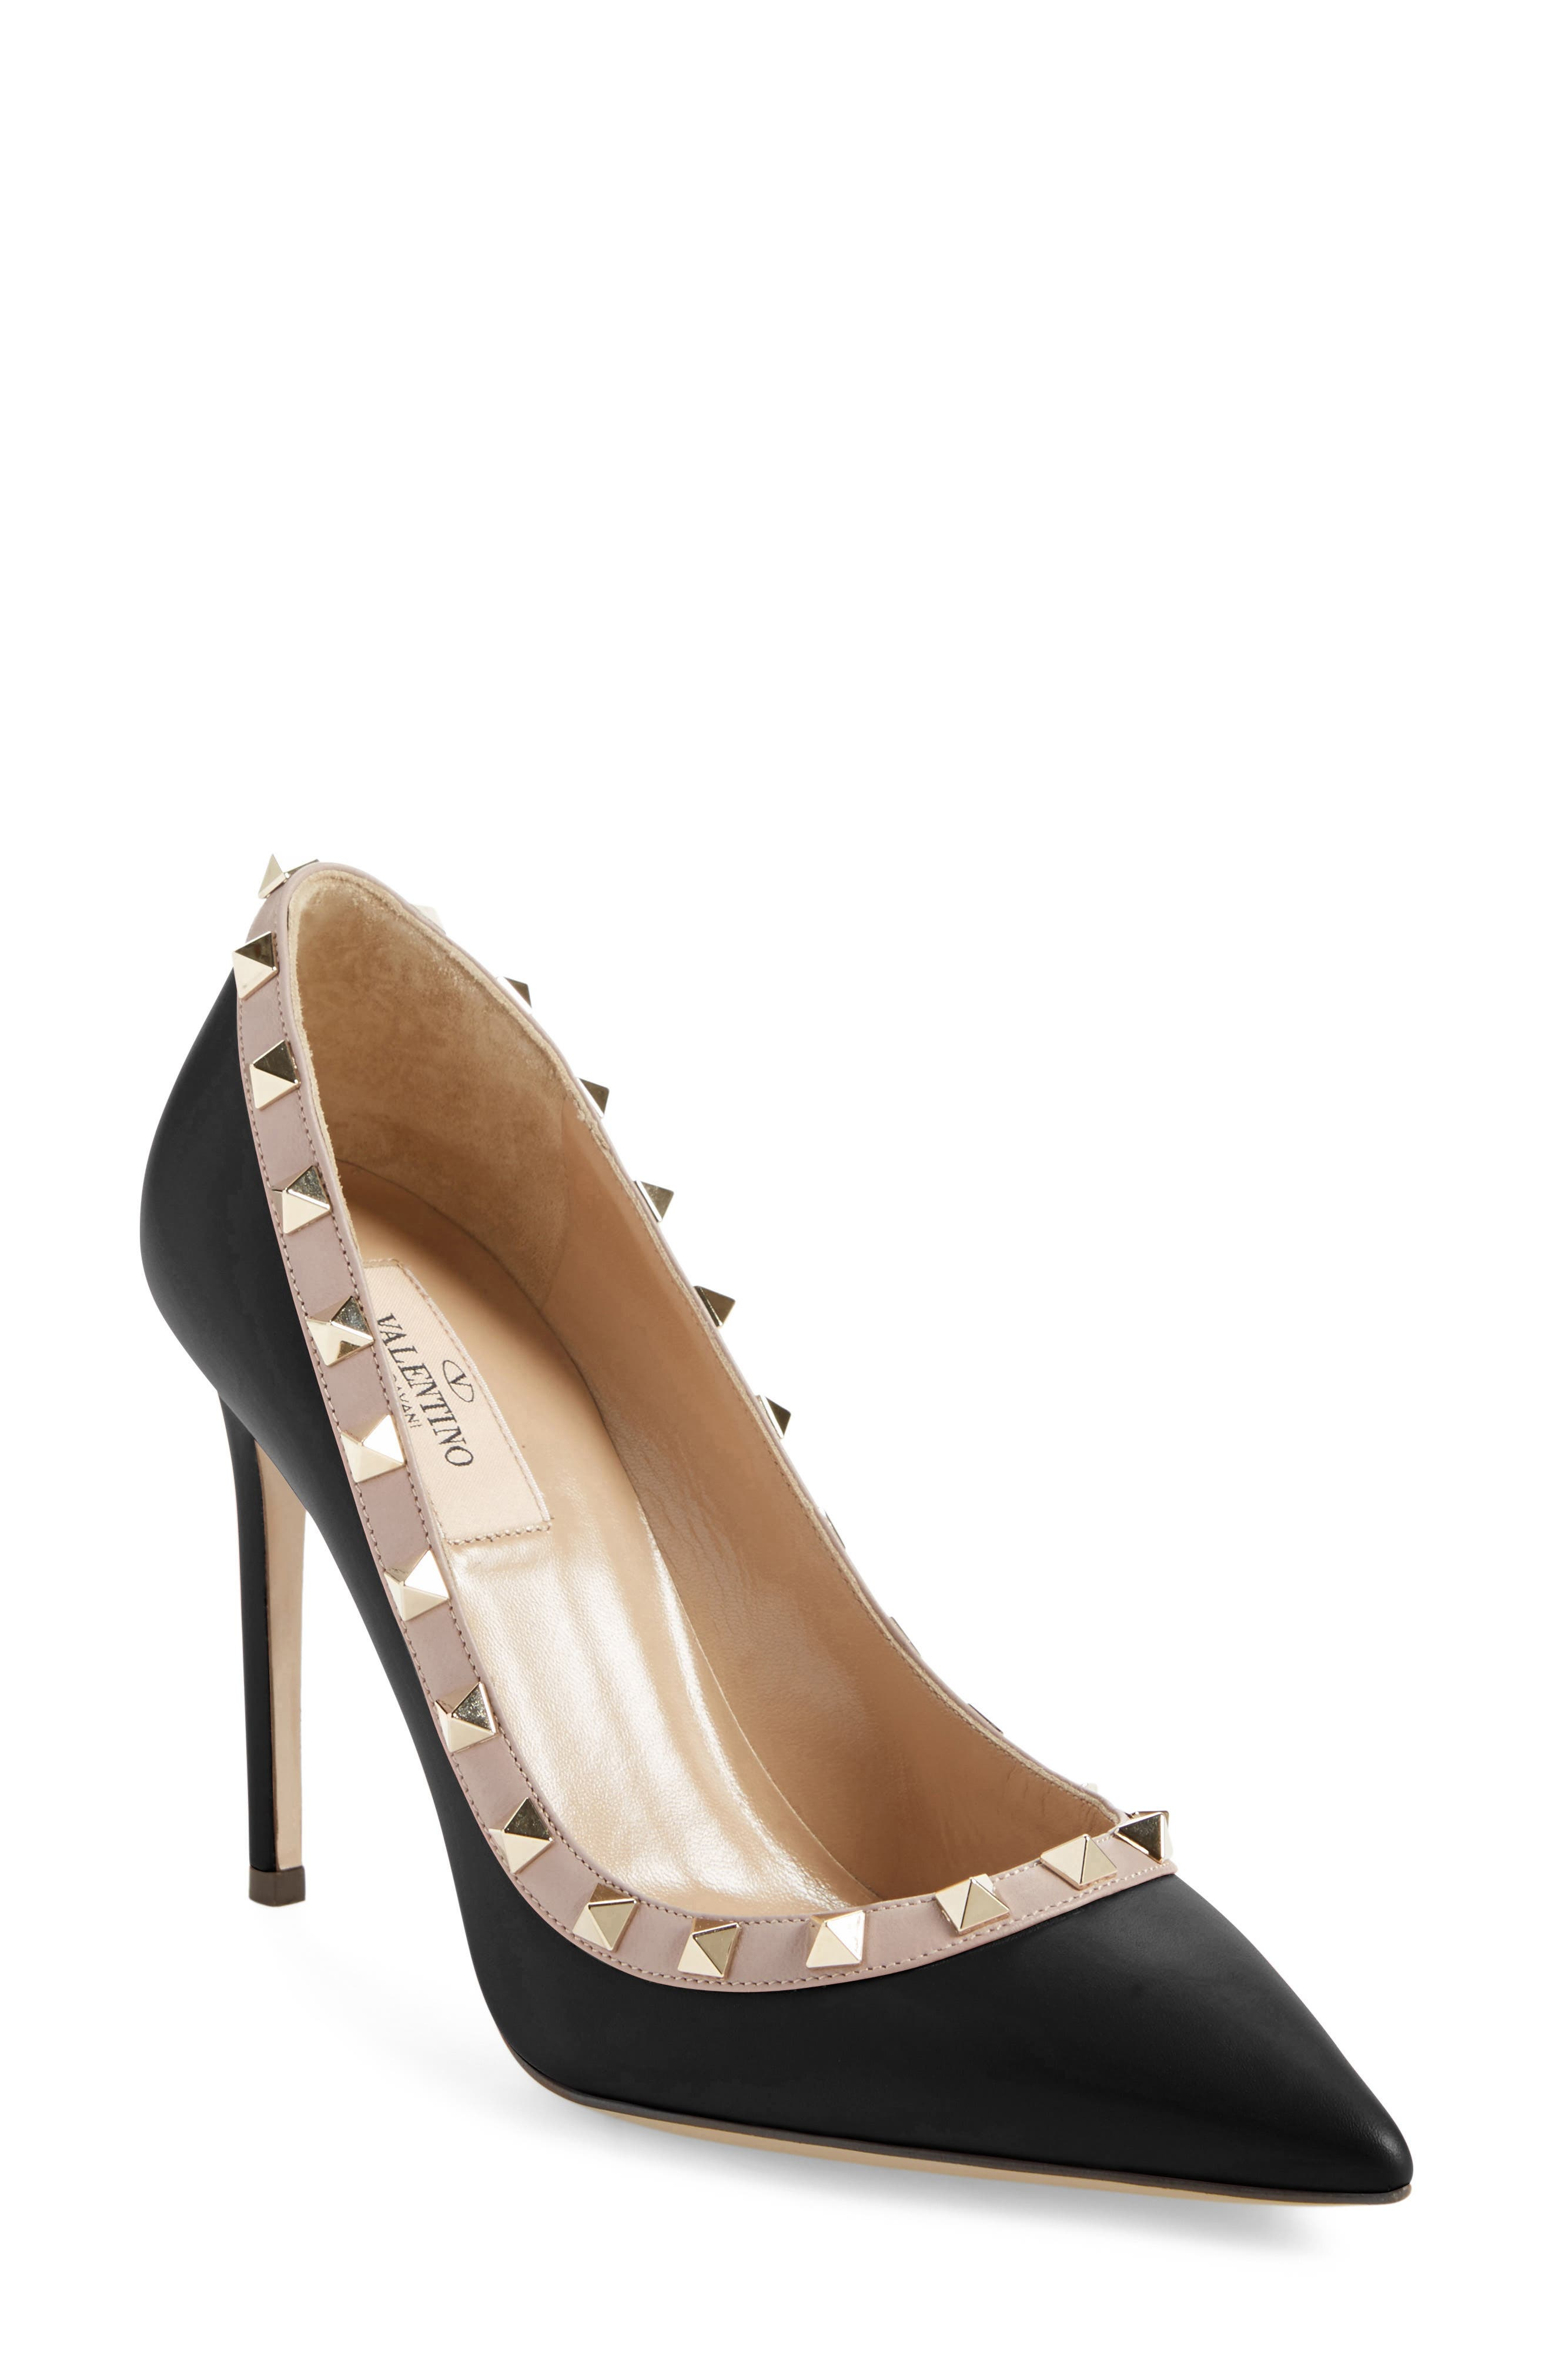 Rockstud Pointed Pump,                             Main thumbnail 1, color,                             Black/ Nude Leather